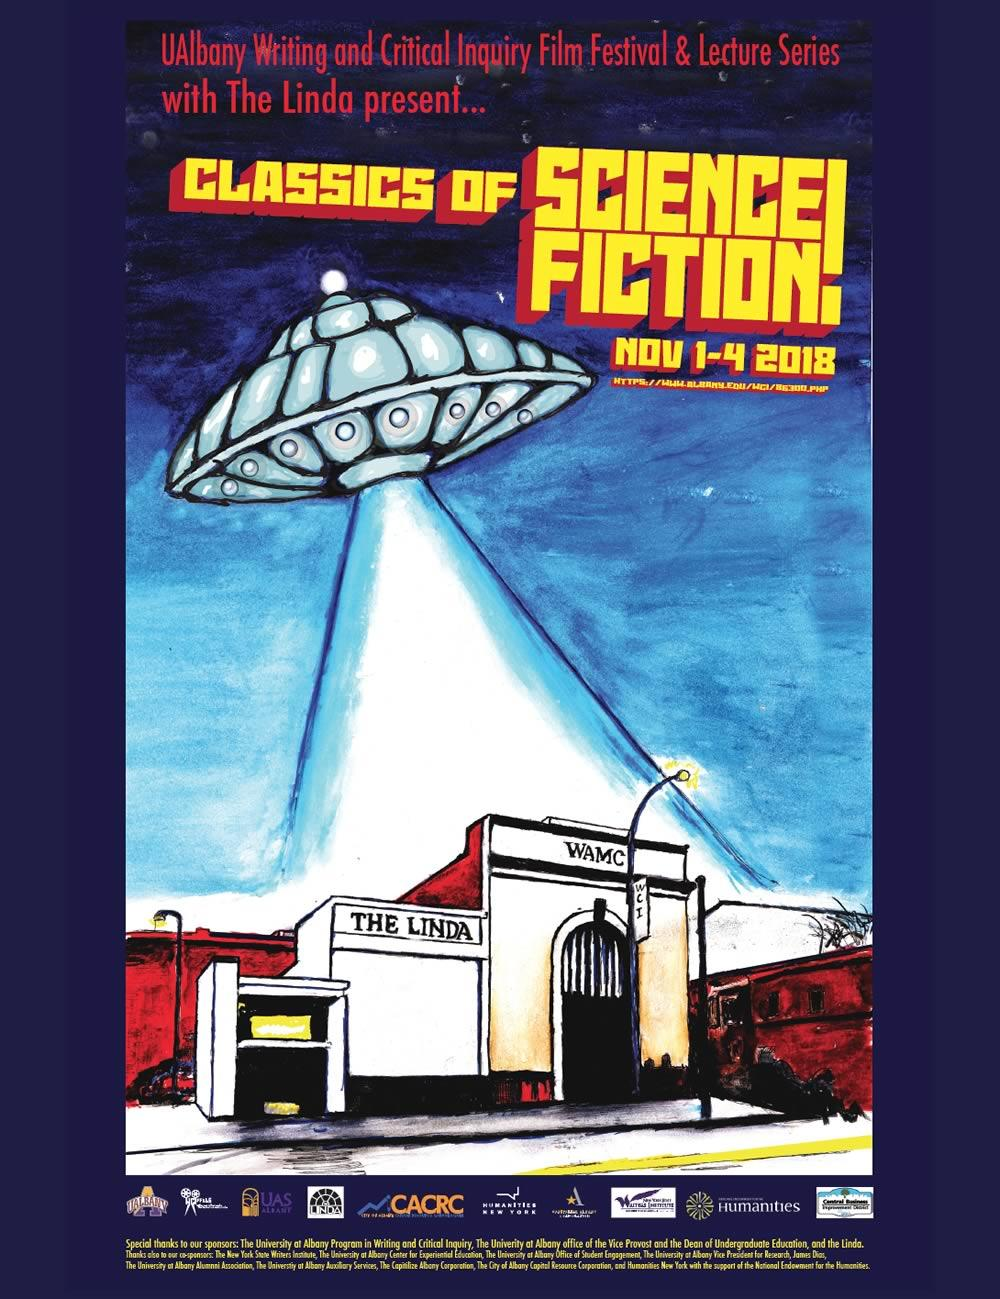 UAlbany 2018 Classics of Science Fiction poster